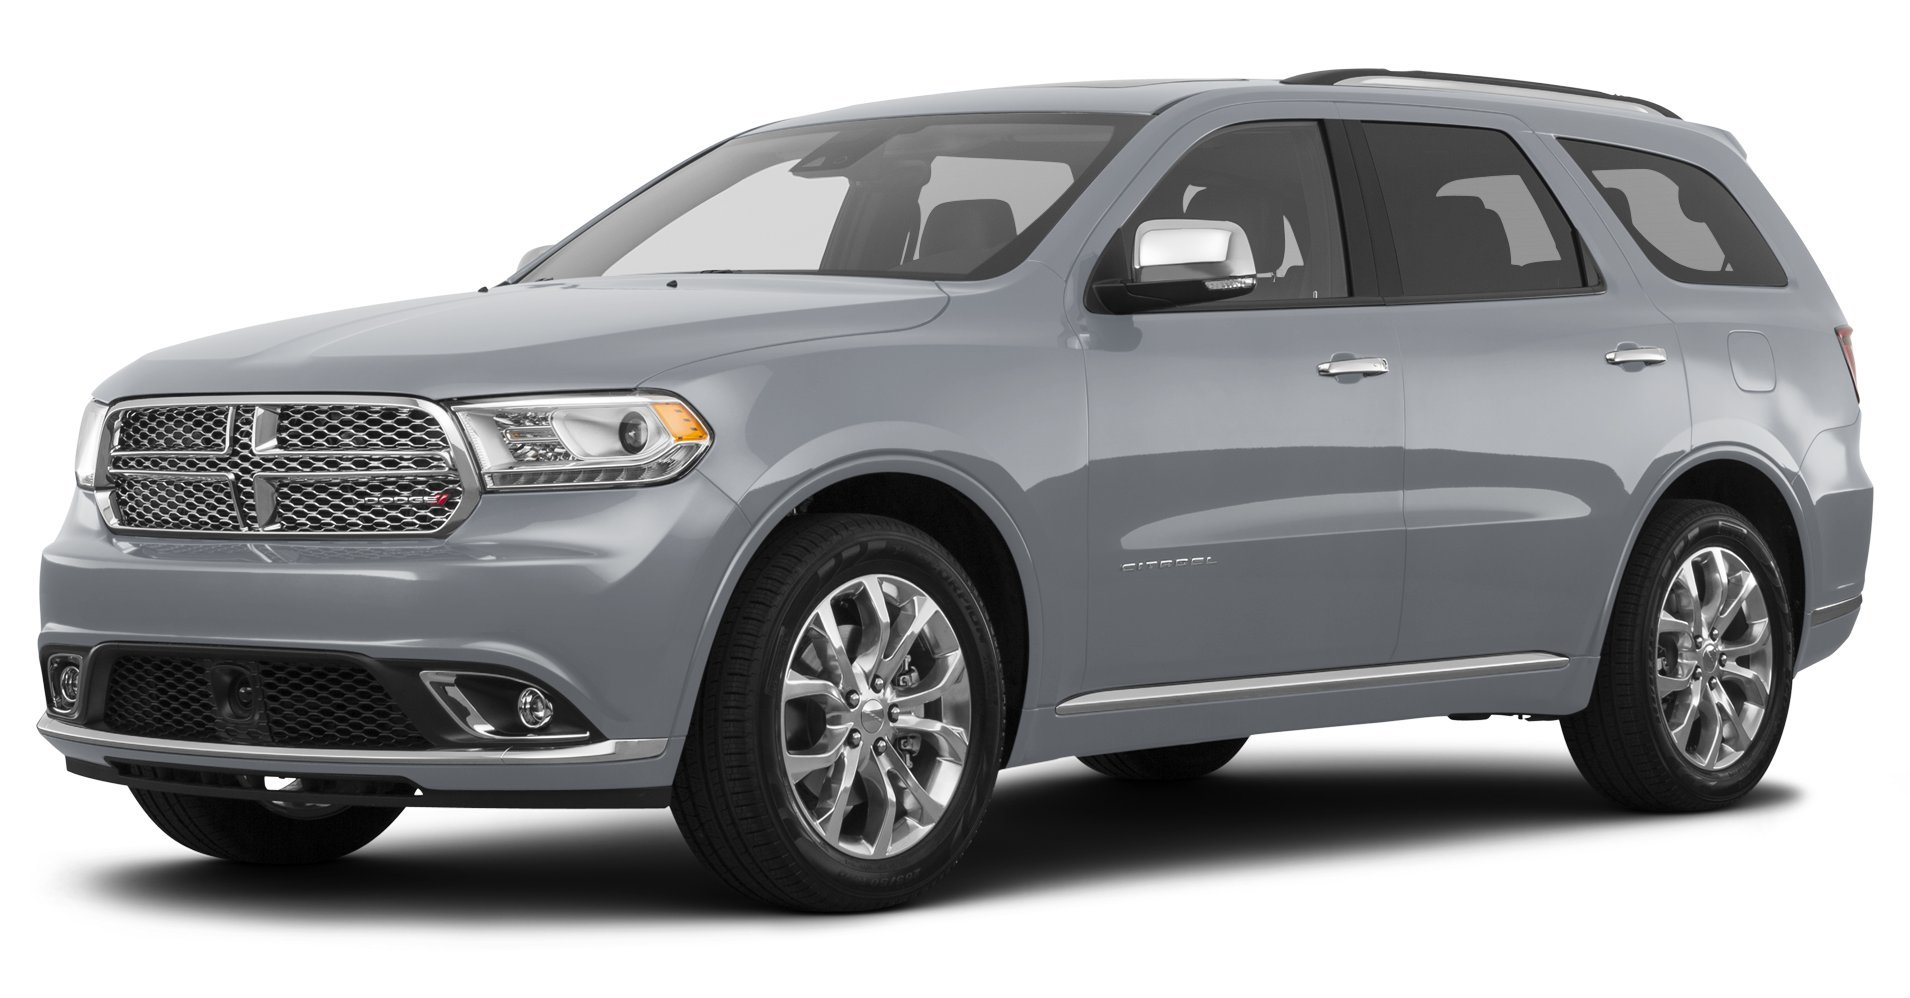 2017 dodge durango reviews images and specs vehicles. Black Bedroom Furniture Sets. Home Design Ideas